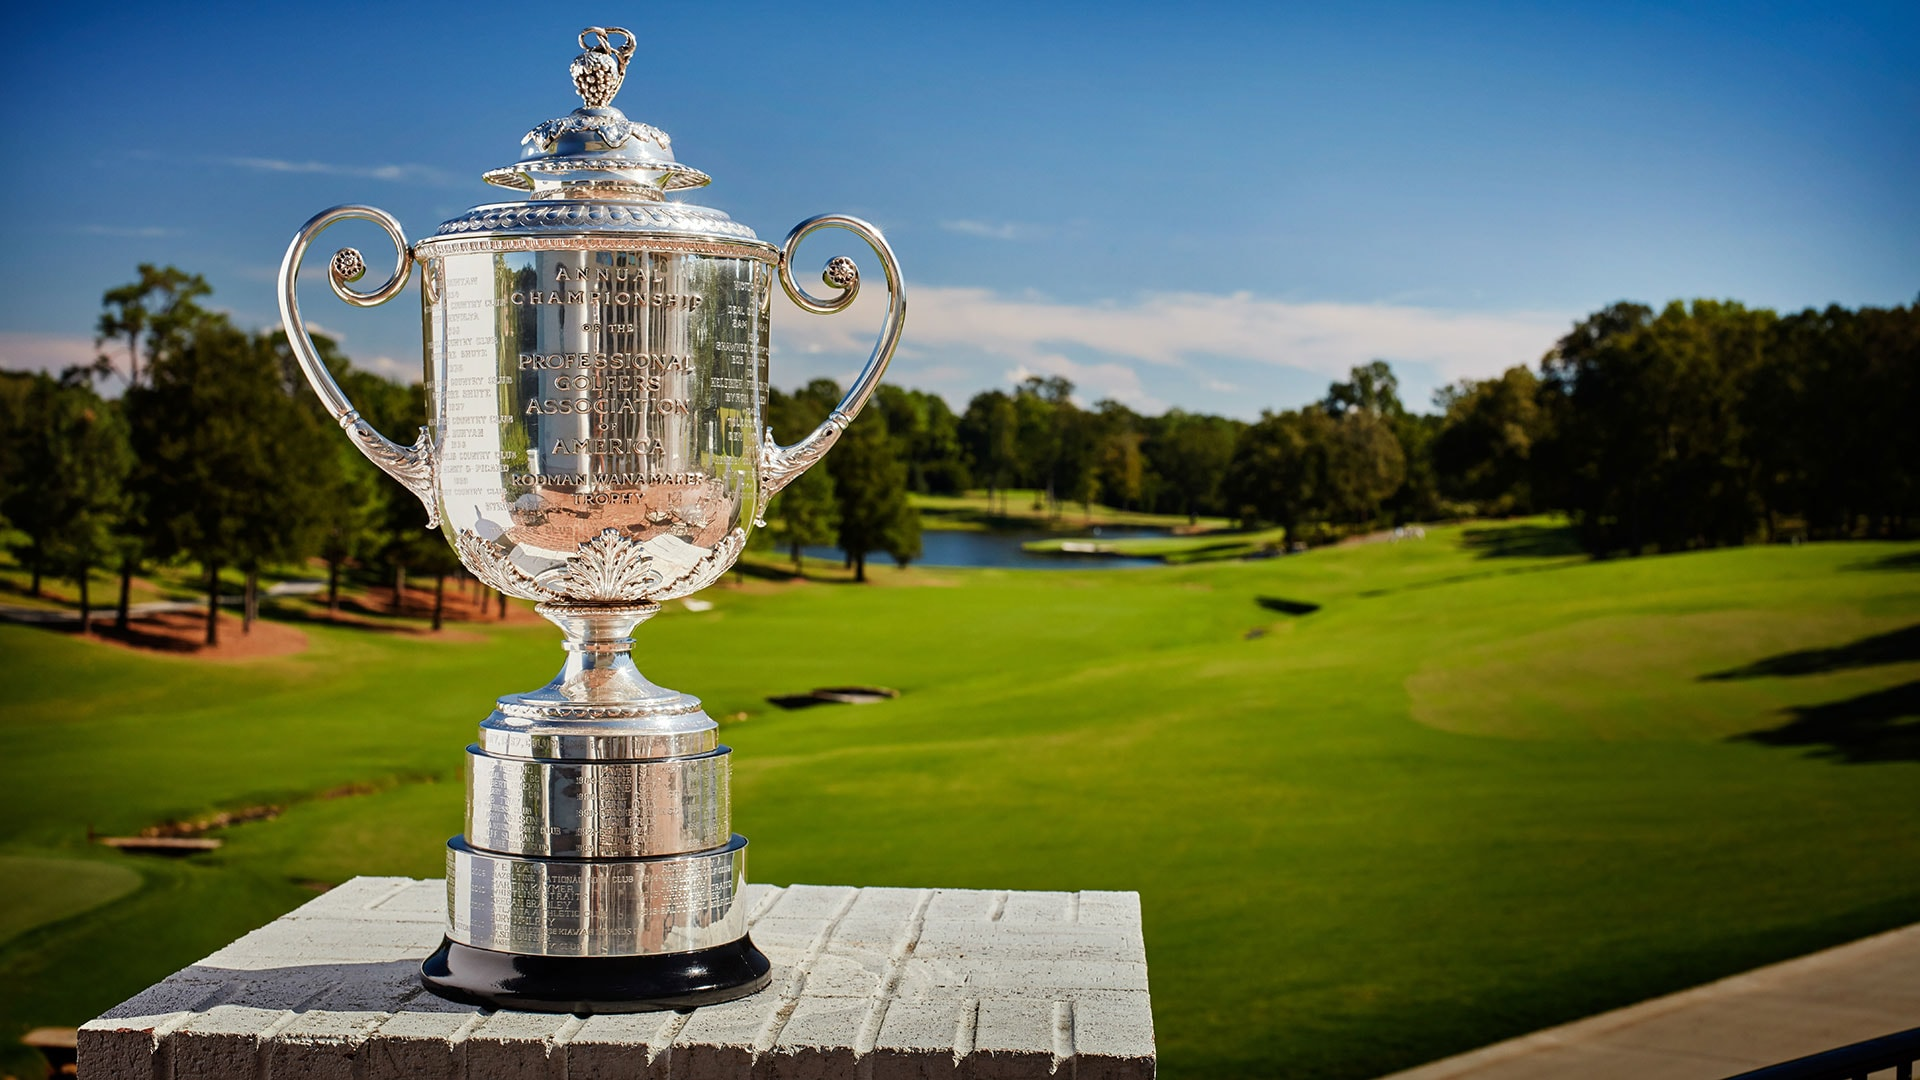 2017 Pga Championship Tee Times Thursday And Friday